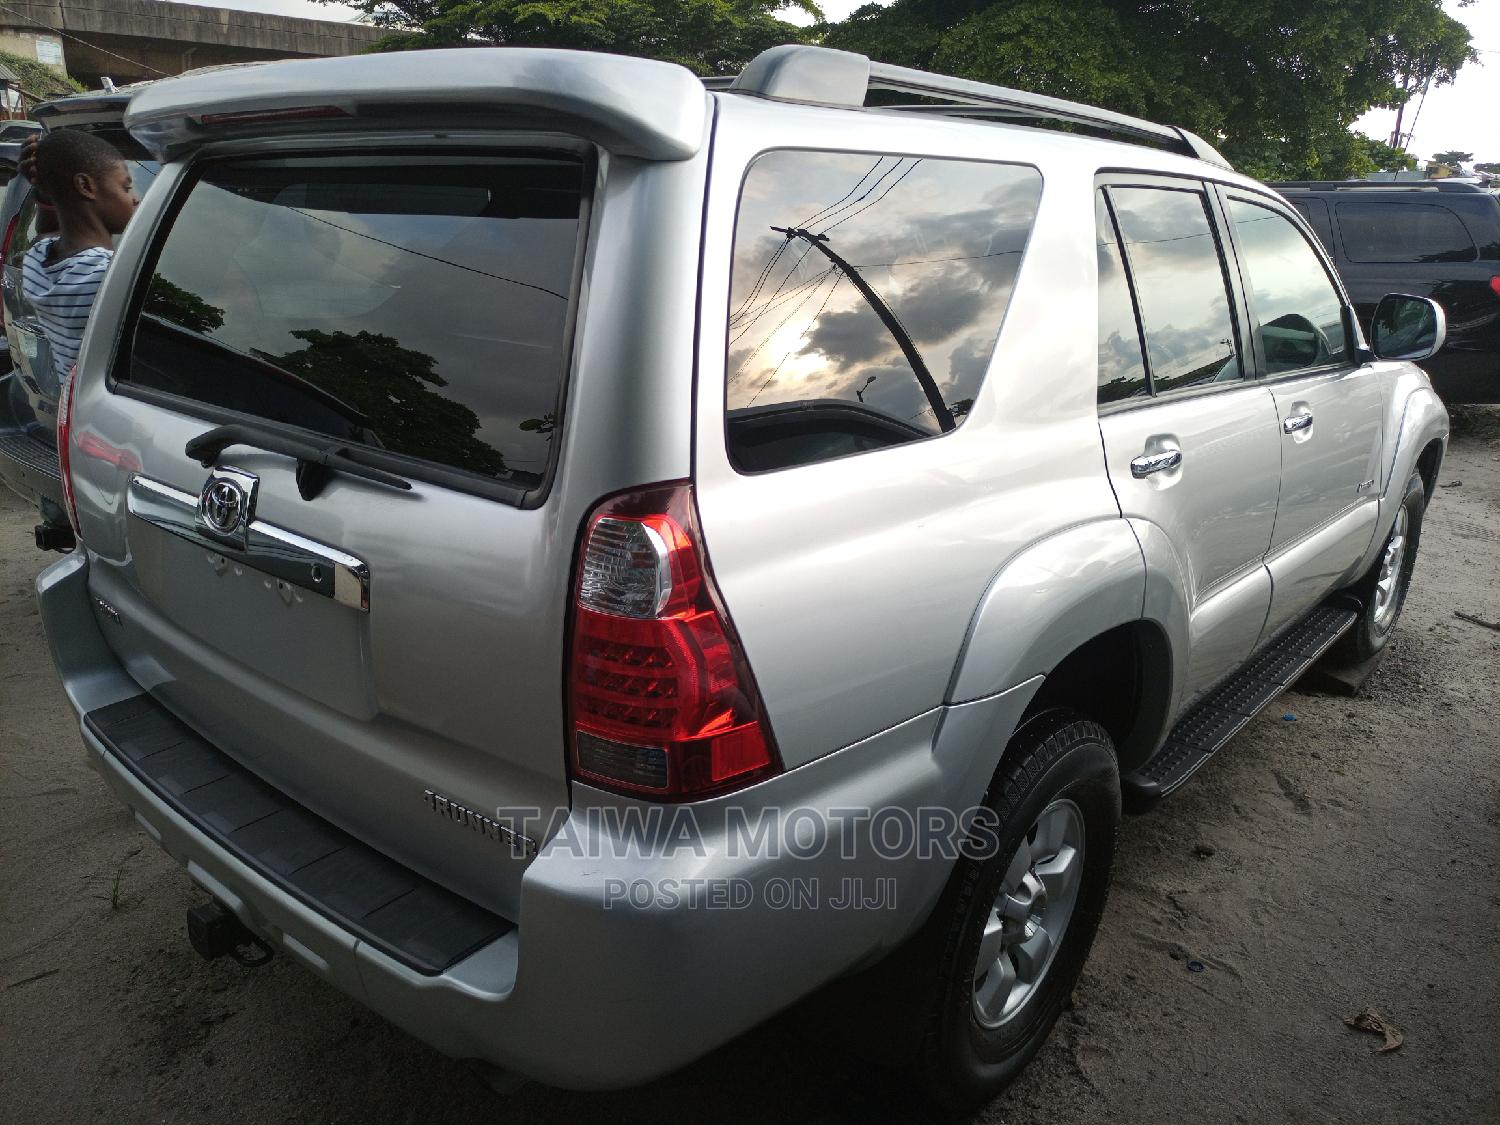 Toyota 4-Runner 2007 Limited 4x4 V6 Silver | Cars for sale in Apapa, Lagos State, Nigeria